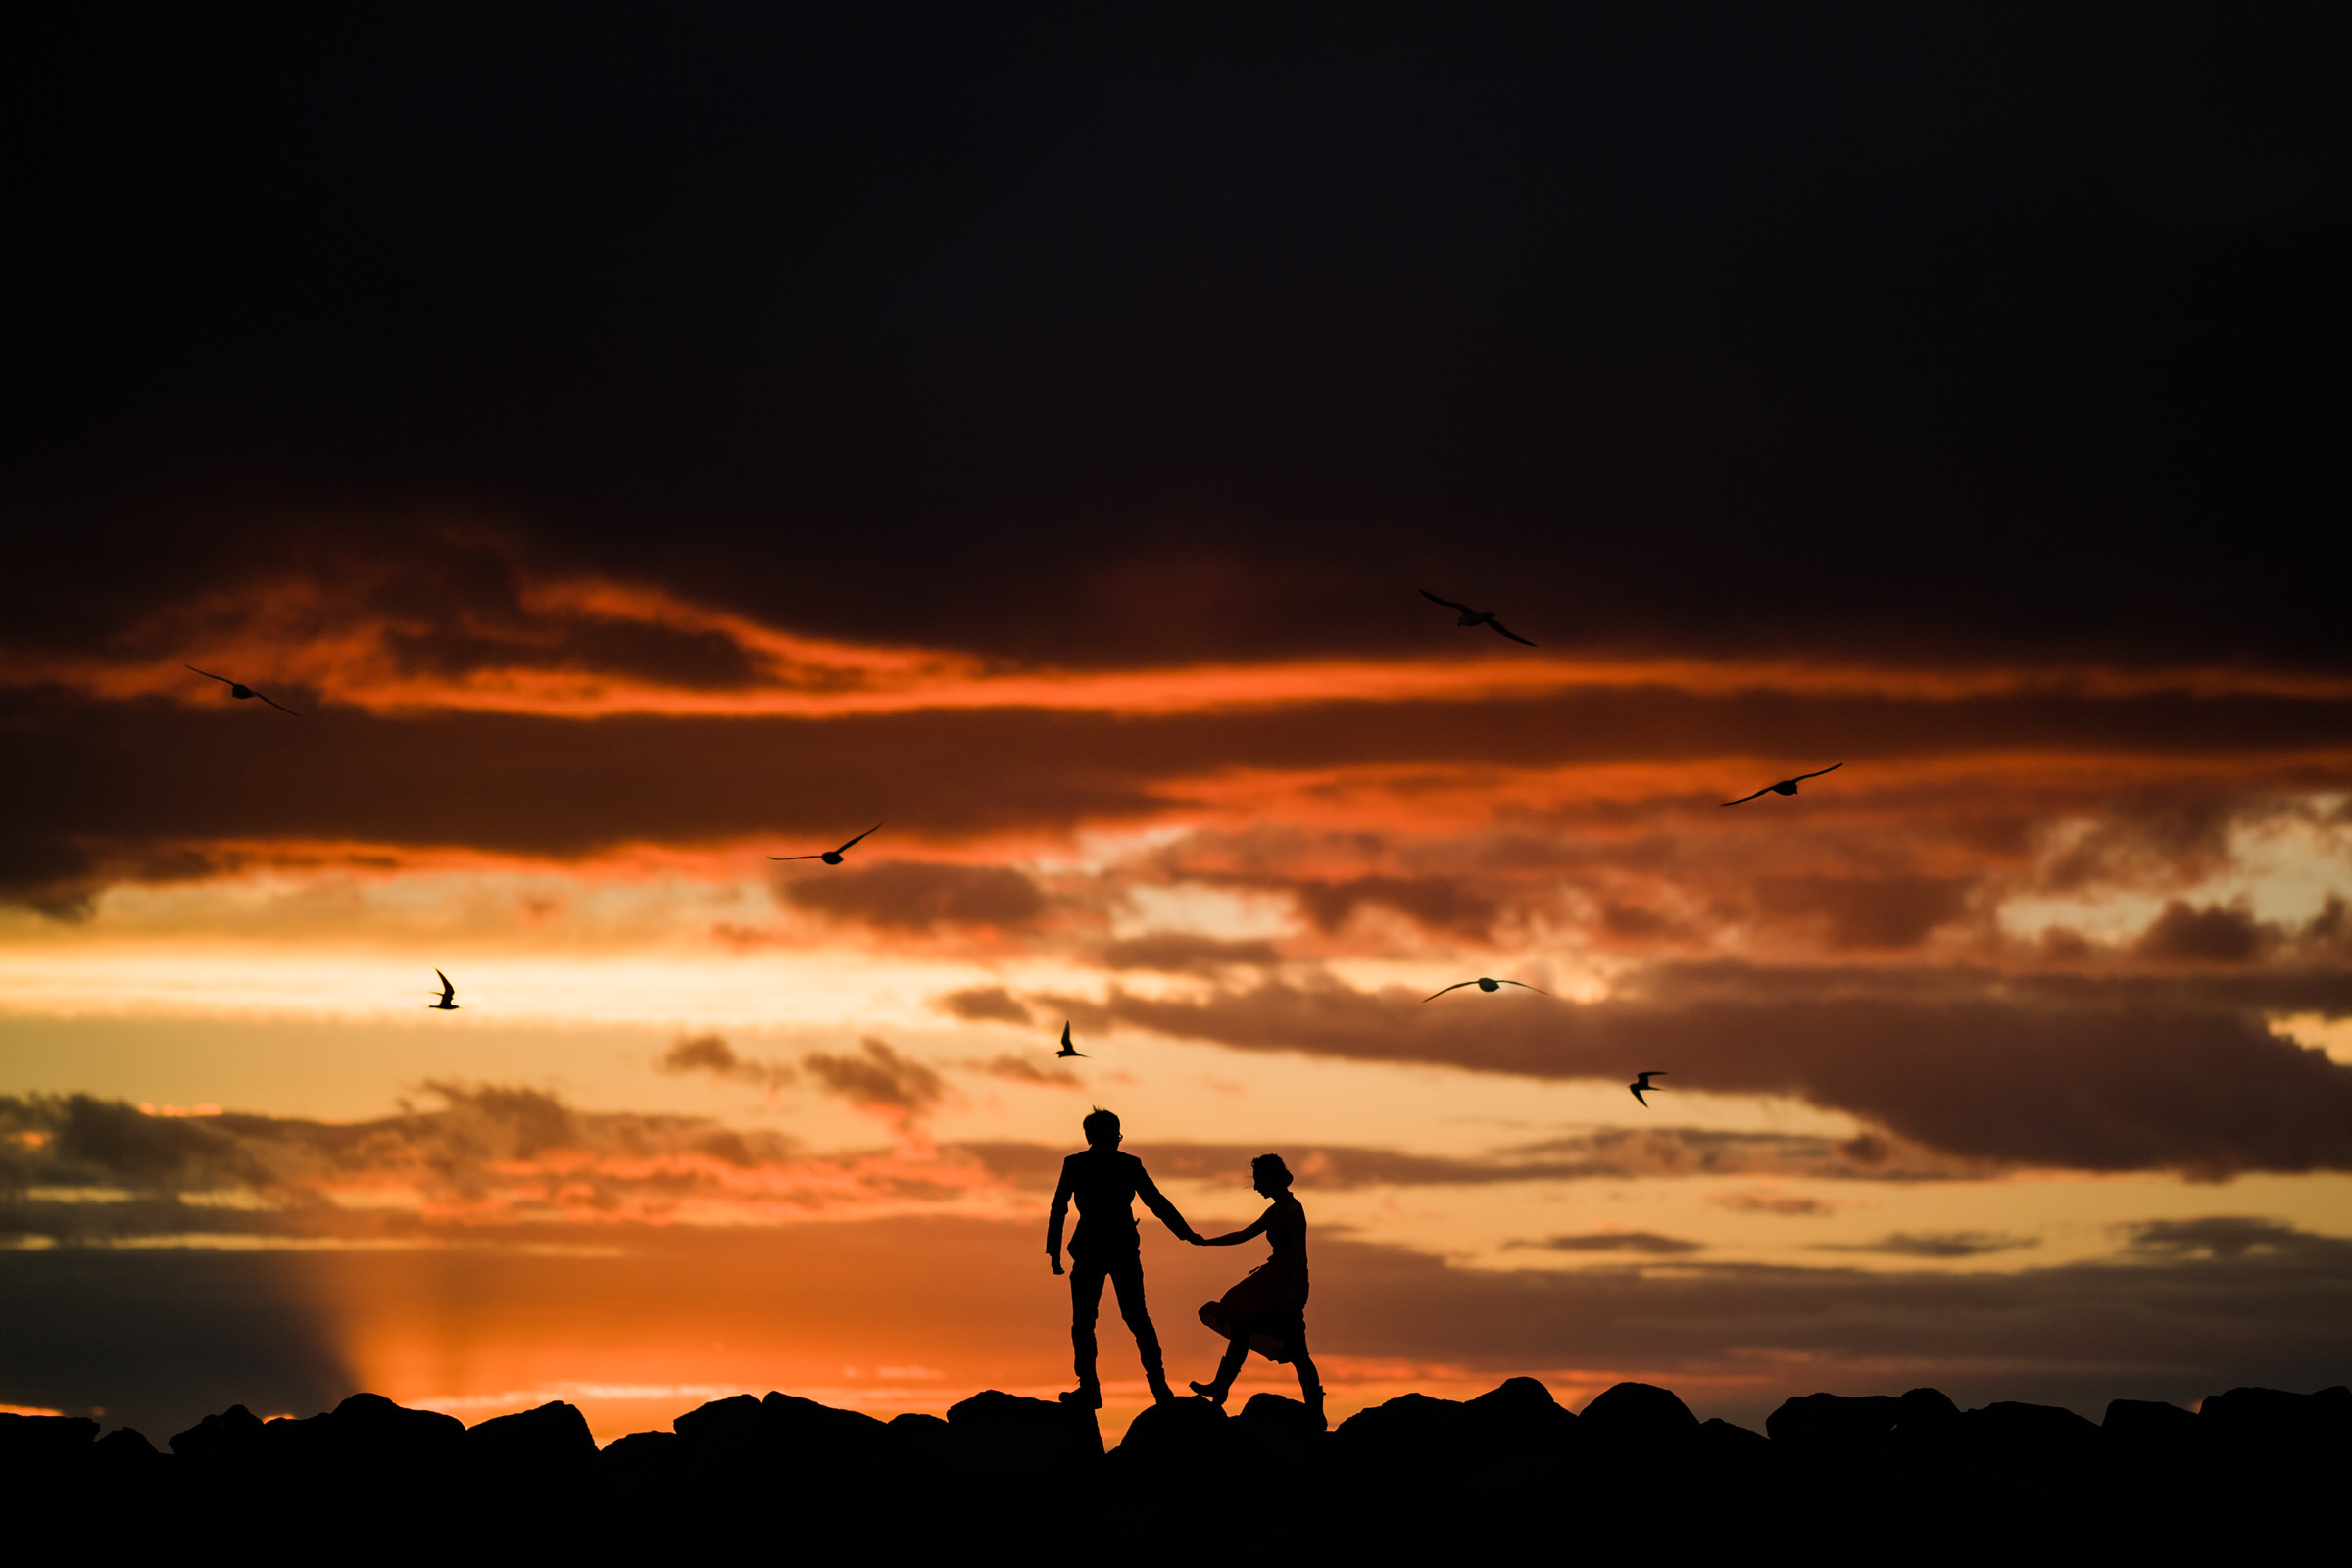 Couple silhouette on rocks at sunset in Iceland - photo by M&J Studios